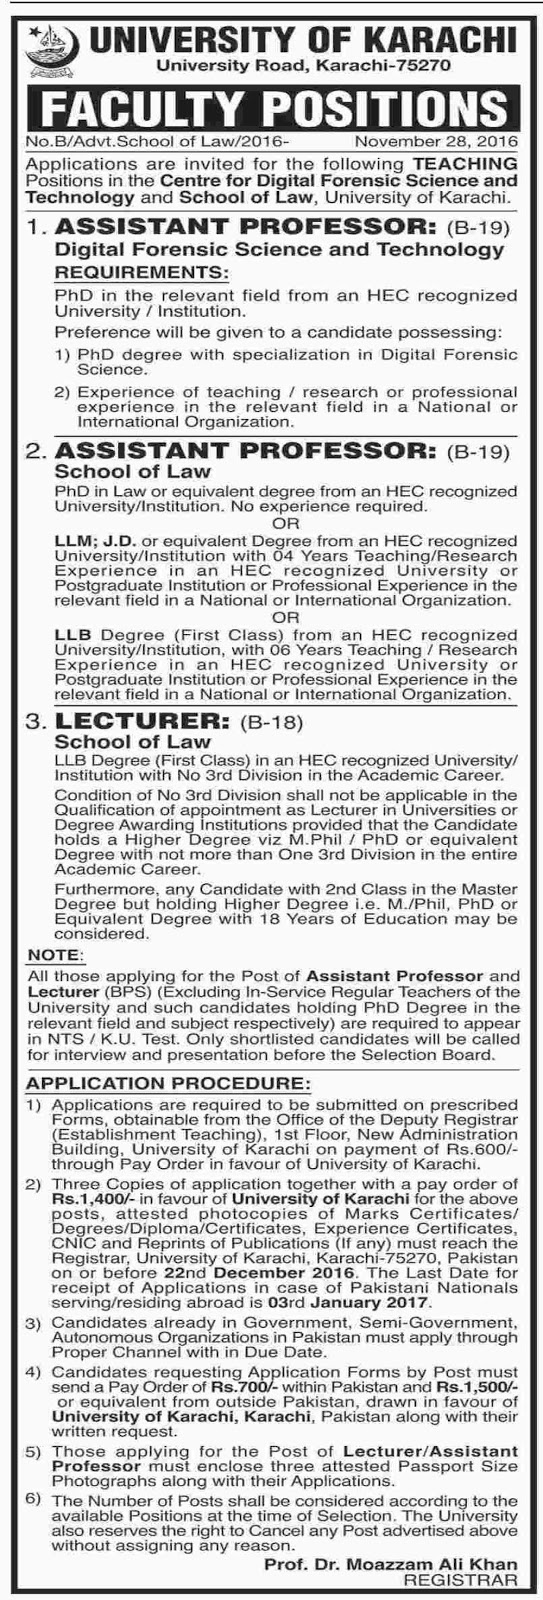 University of Karachi Professor Jobs